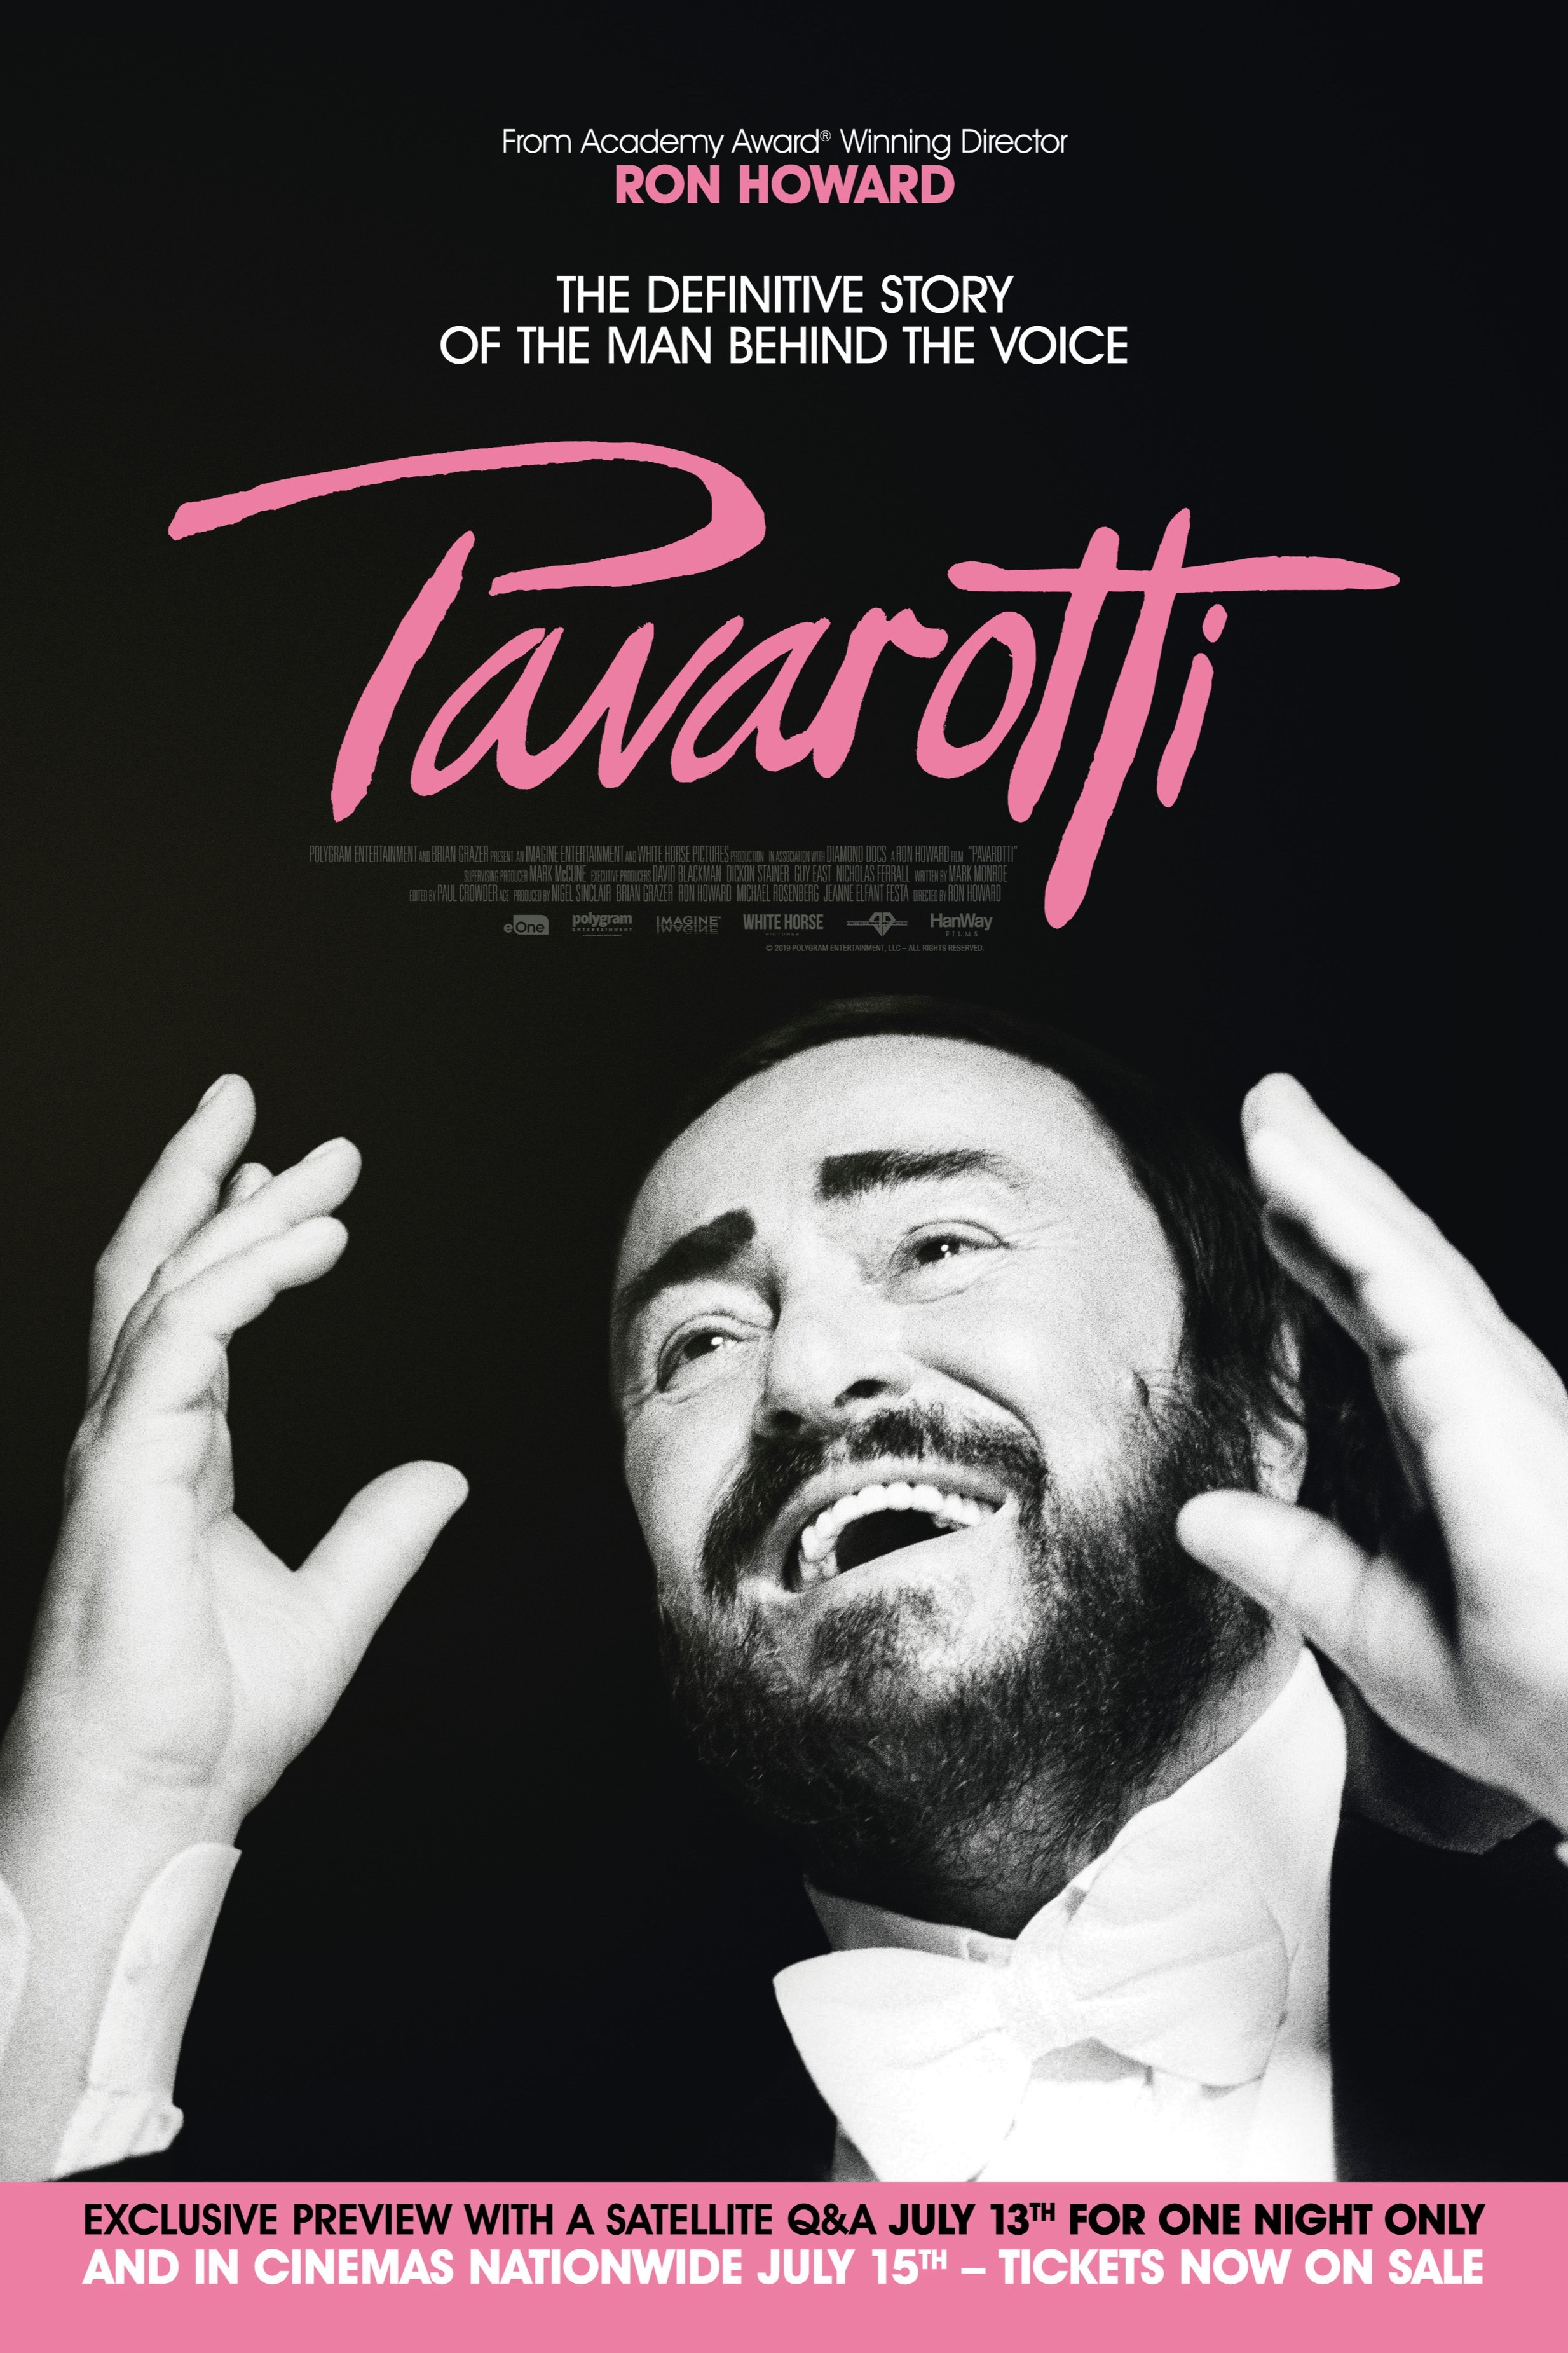 PAVAROTTI - From the team behind the worldwide success The Beatles: Eight Days a Week comes two time Academy Award® winning director Ron Howard's documentary celebrating the life of the beloved opera star Luciano Pavarotti, who sold over 100 million records in his lifetime. The 1990 World Cup in Italy was the moment opera left the elite and hit the masses. Opera star Pavarotti joined fellow tenors Placido Domingo and Jose Carreras onstage in Rome watched by 1.4 billion worldwide. Their powerful rendition of 'Nessun Dorma' lives on as one of the most popular and famous pieces of music the world has ever heard, and Pavarotti realised his long held dream of bringing opera into the mainstream. Ron Howard takes an intimate approach in telling Pavarotti's story, going beyond the iconic public figure to reveal the man himself.Thanks to a partnership with Decca Records and unique access to the Pavarotti family archives, home videos, behind the scenes and extensive live music footage, we see Pavarotti's personal story emerge: from his humble beginnings in Northern Italy through to global superstardom. We travel the world with Pavarotti. We get to know the great tenor as a husband and a father, a committed philanthropist, as well as a fragile artist who had a complex relationship with his own unique talents and unprecedented success.PAVAROTTI will include the latest Dolby Atmos audio technology, allowing theatrical audiences to experience the late Pavarotti's extraordinary voice once more in a unique and spine-tingling way.